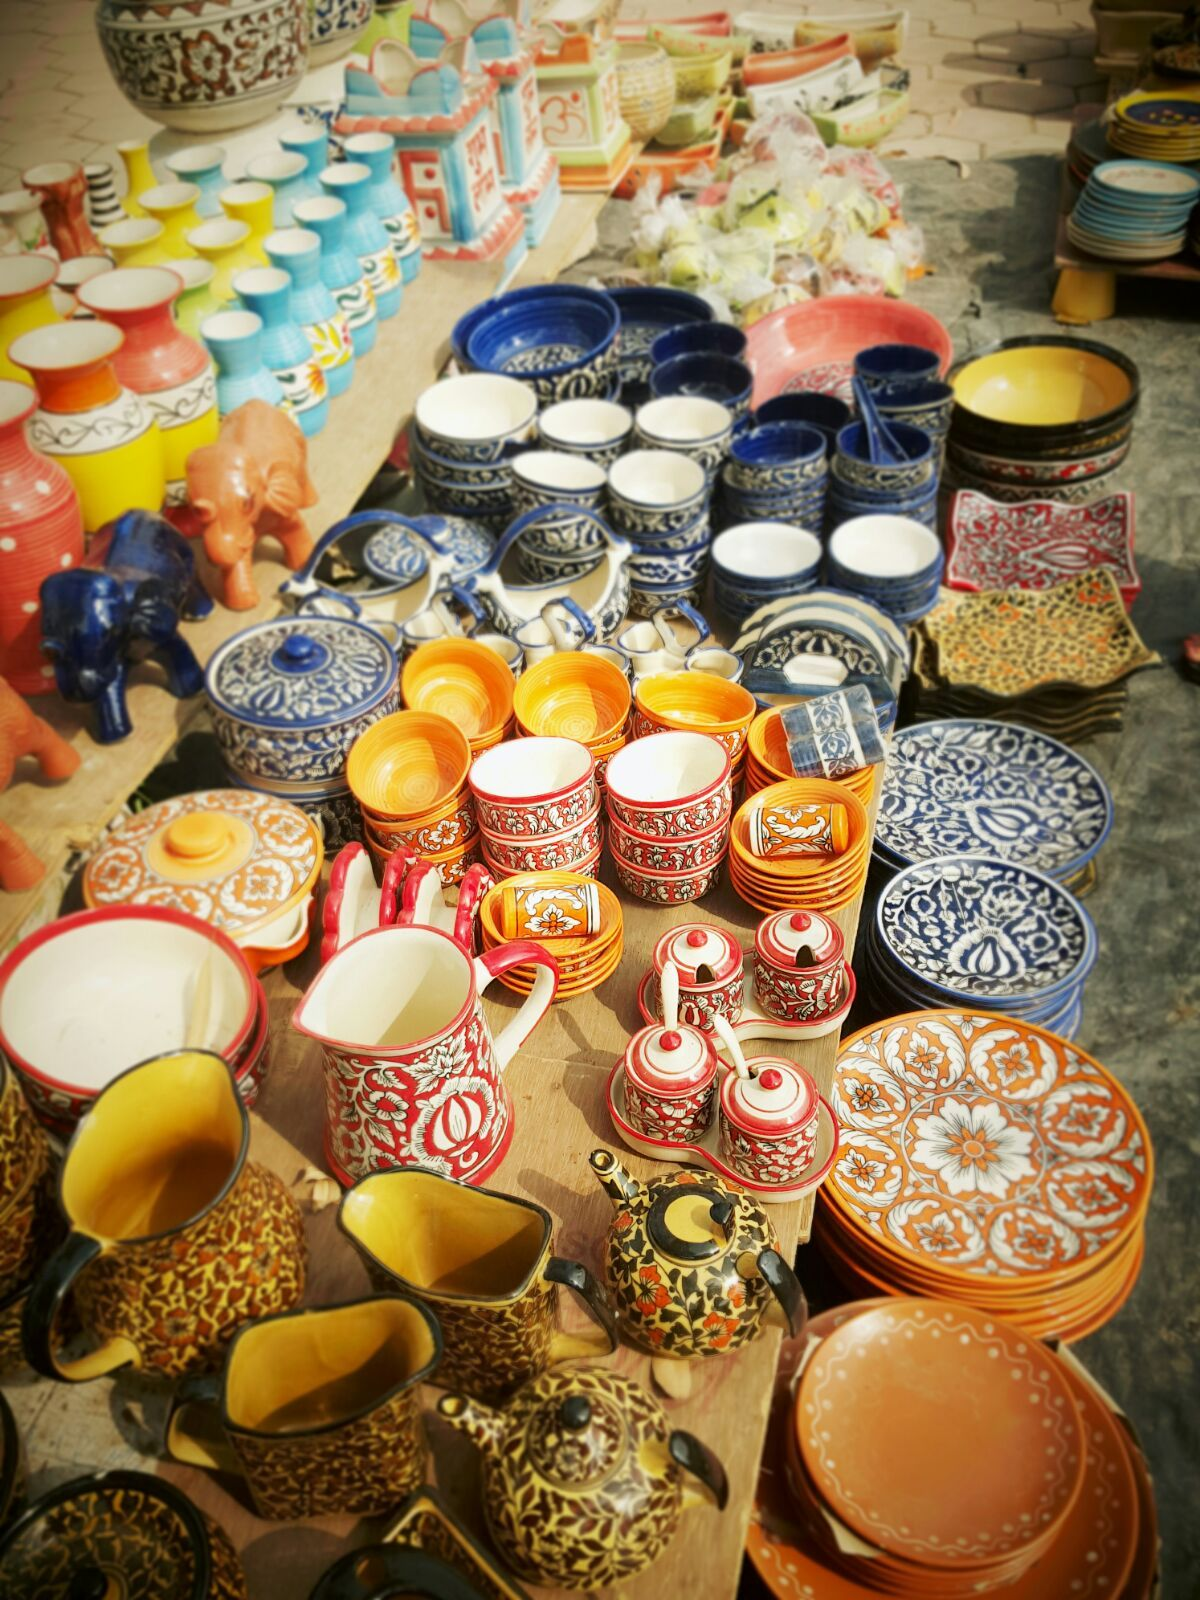 Gramin Haat Bazar Shopping Spot in Indore to Satisfy the Shopaholic in You